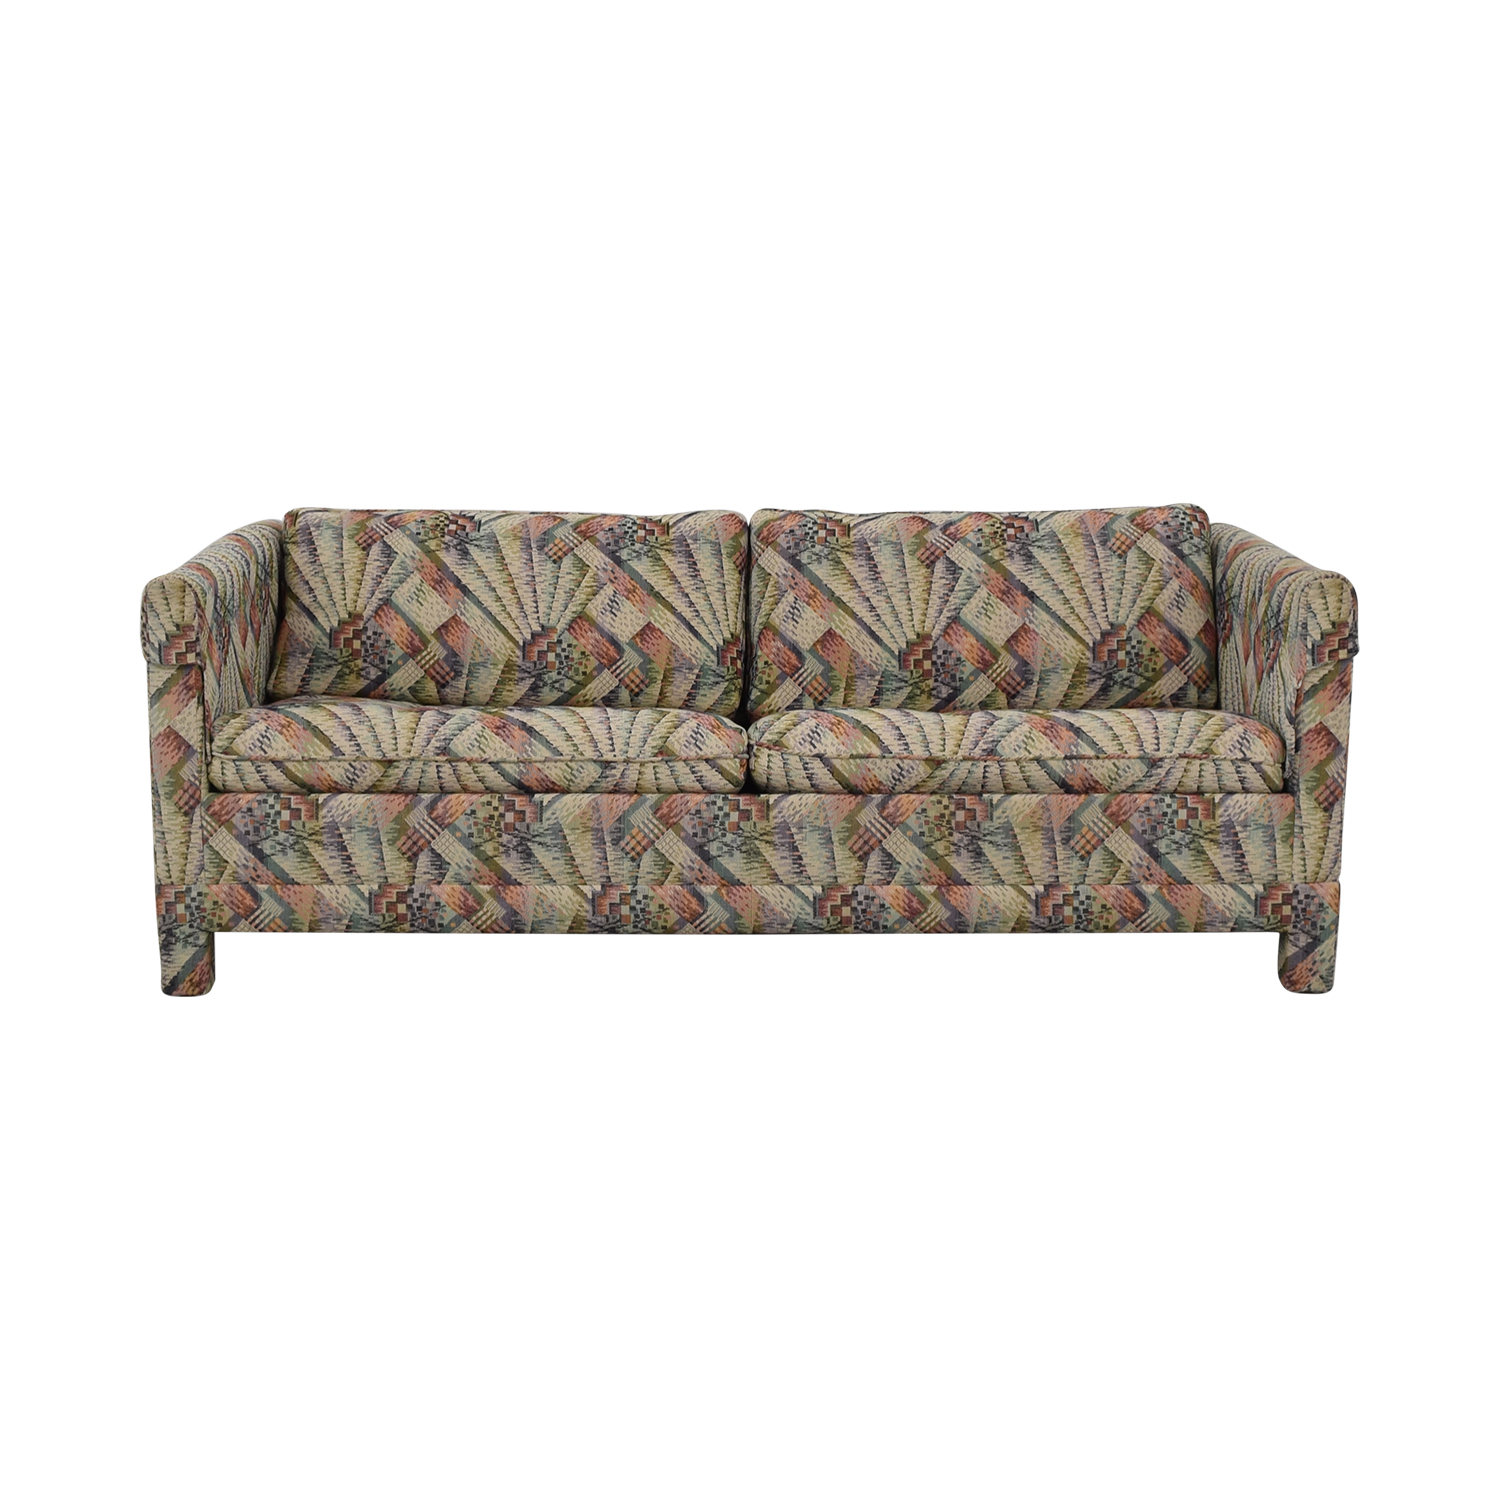 shop Mittman Patterned Queen Sleeper Sofa Lewis Mittman Sofa Beds